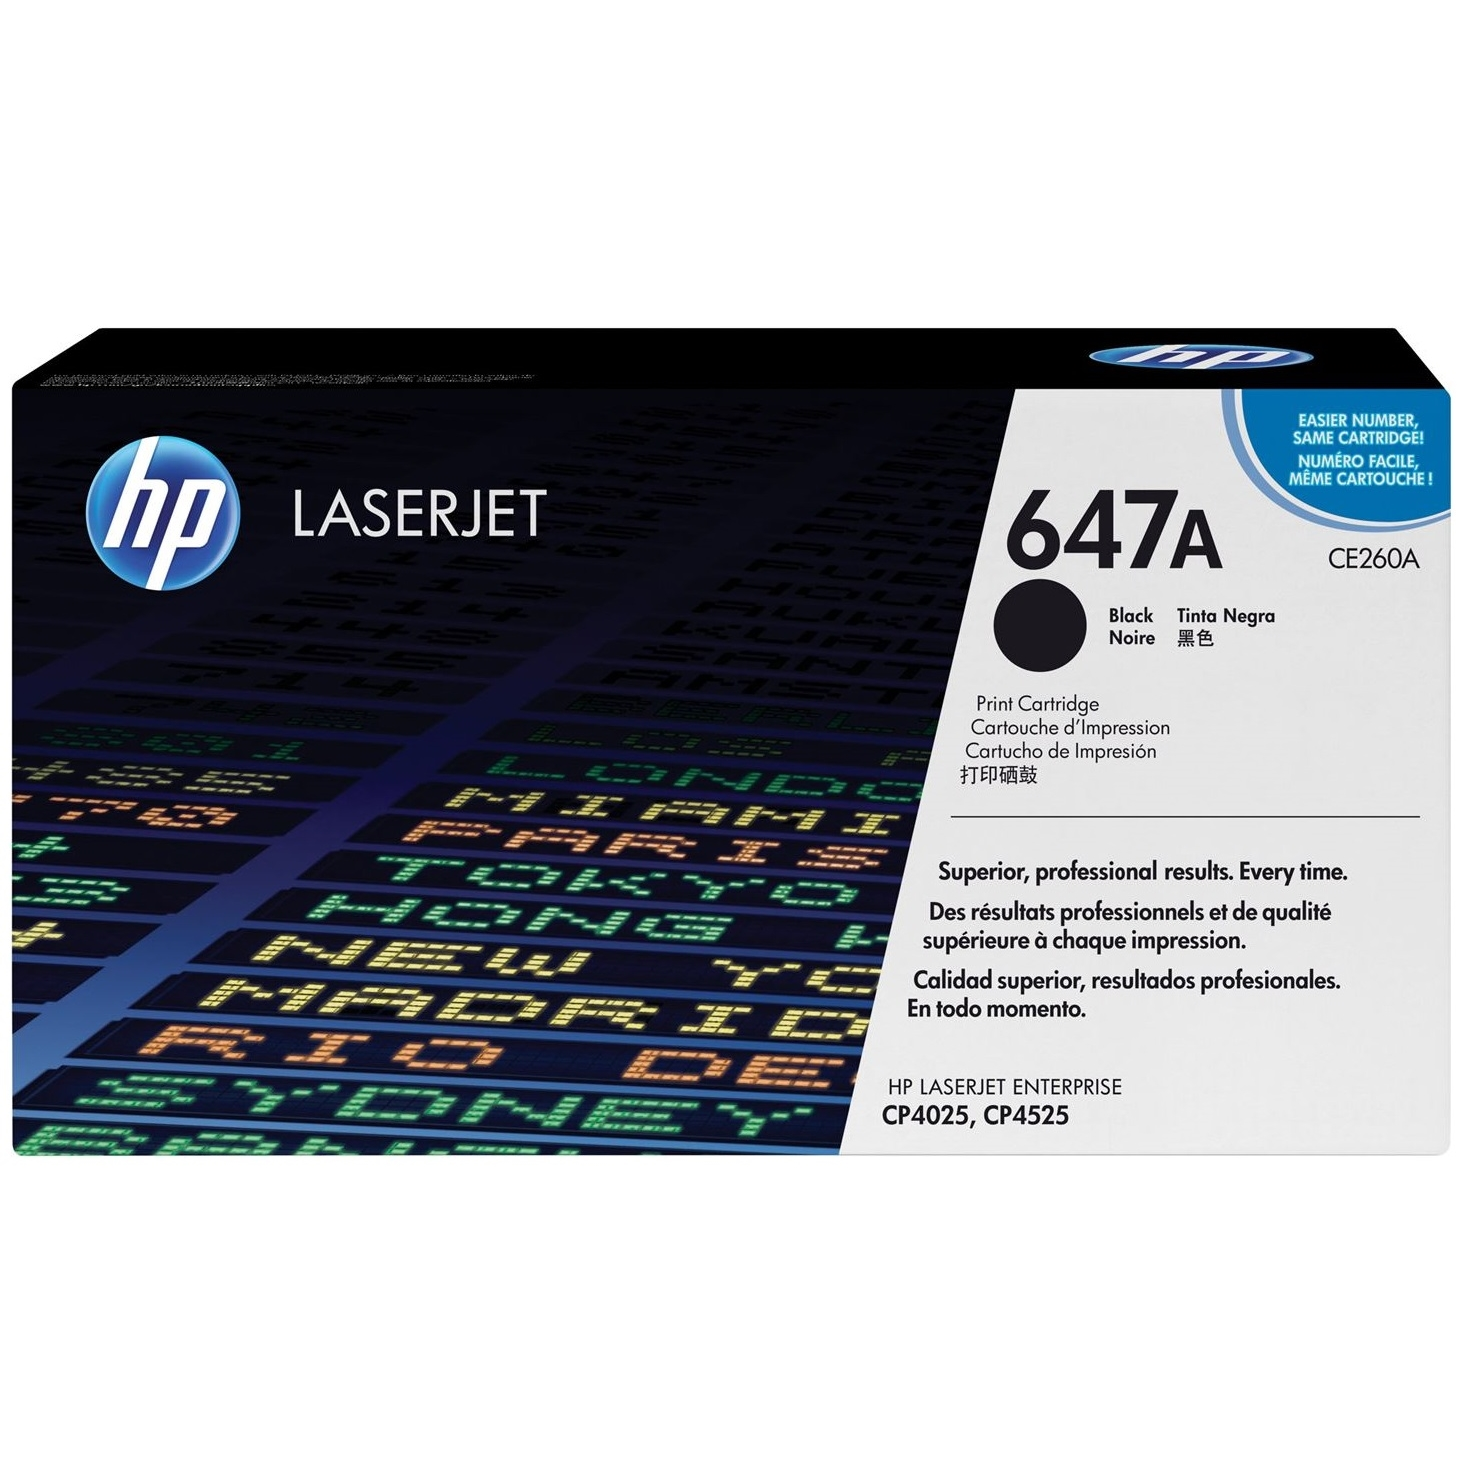 Original HP 647A Black Toner Cartridge (CE260A)